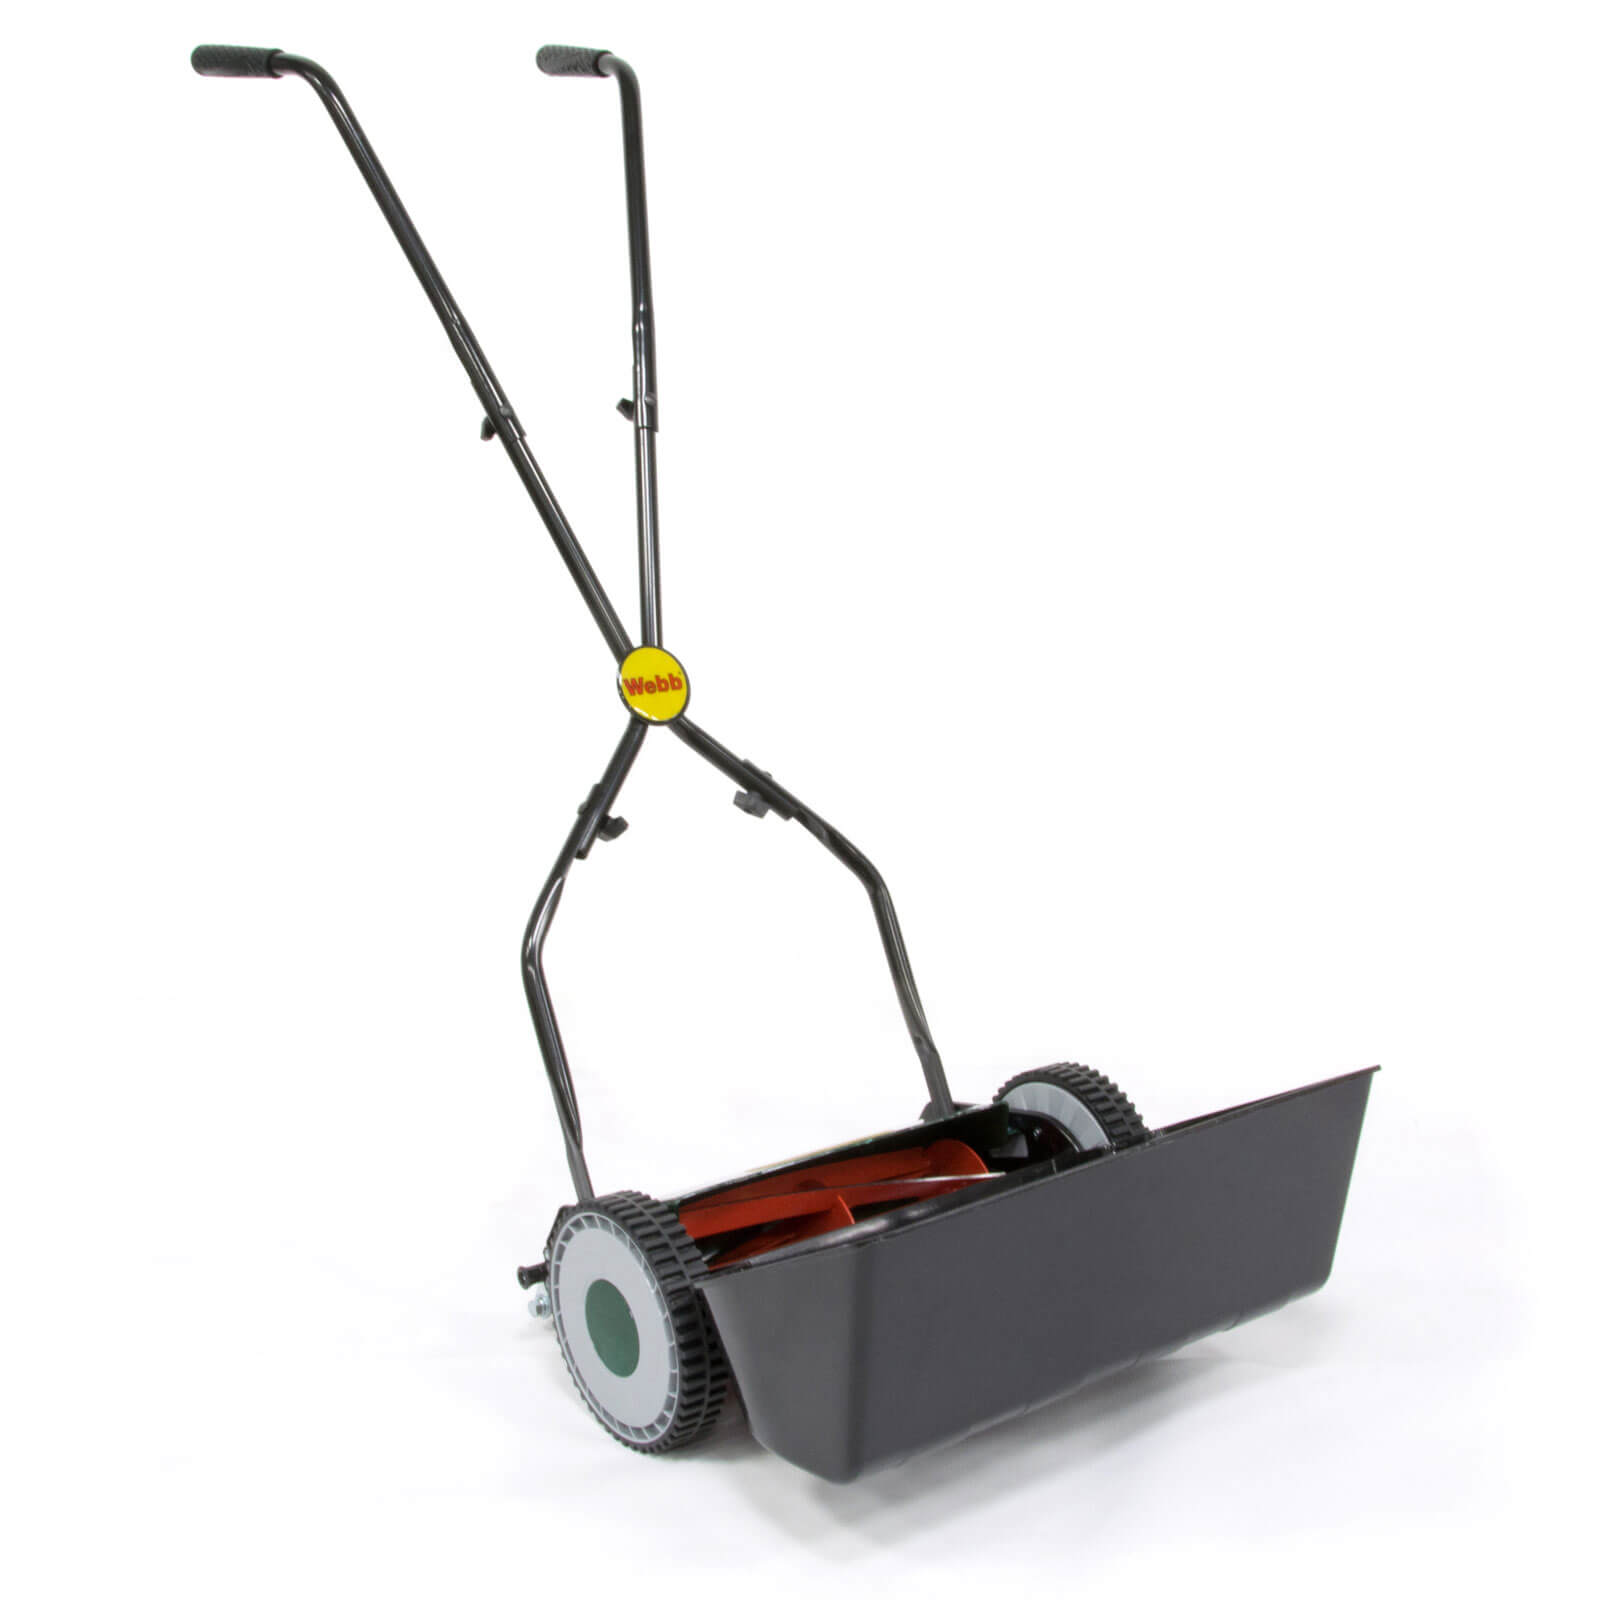 Image of Webb WEH30 Autoset Push Cylinder Hand Lawnmower 300mm